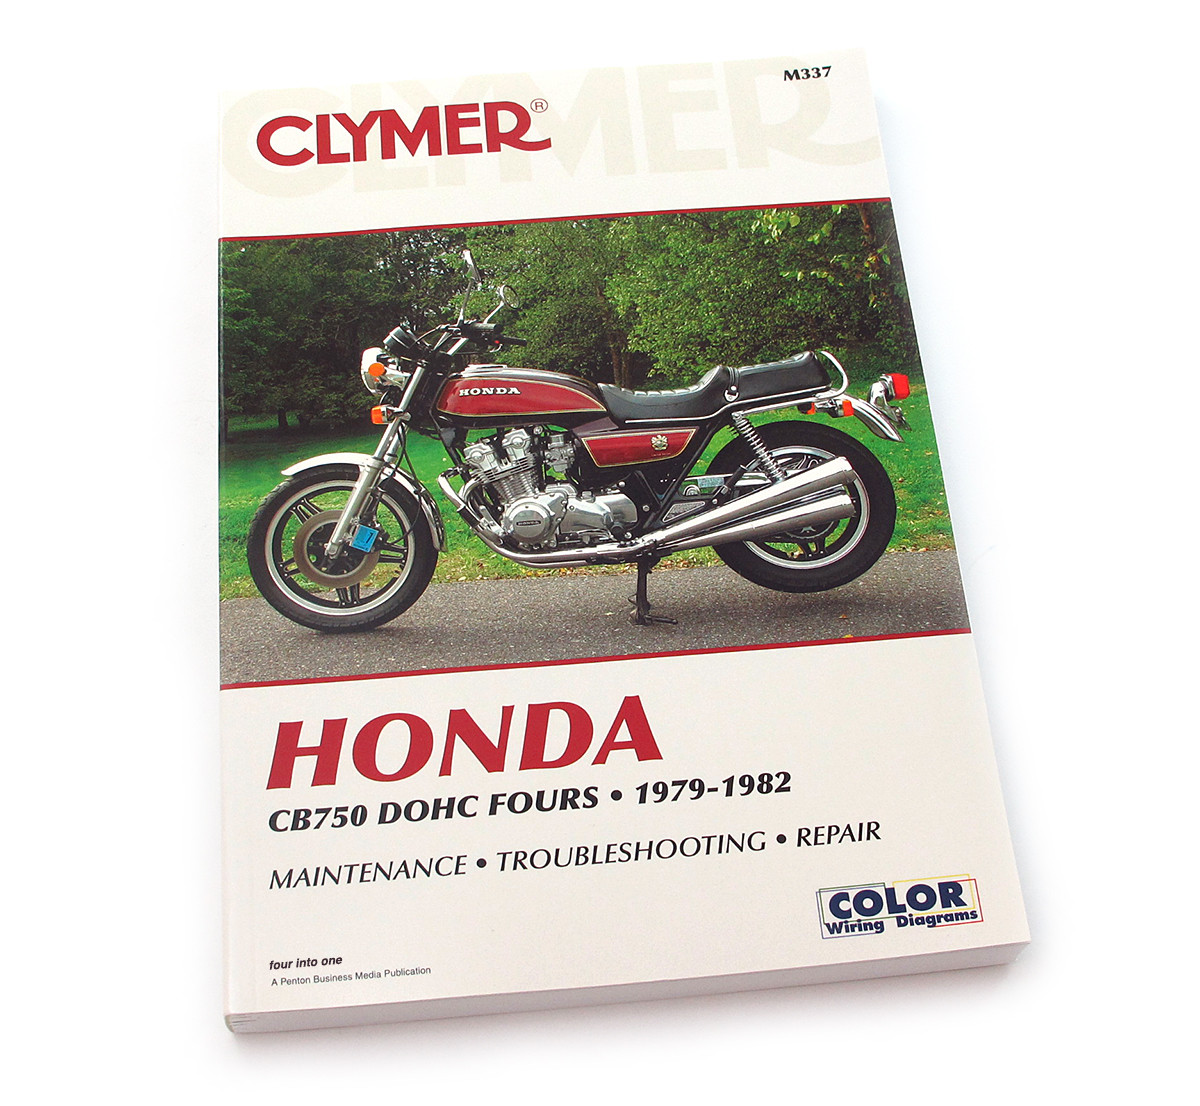 1979 Suzuki Rm125 Wiring Diagram Trusted Diagrams Gs1000 Honda Cb750 Electrical